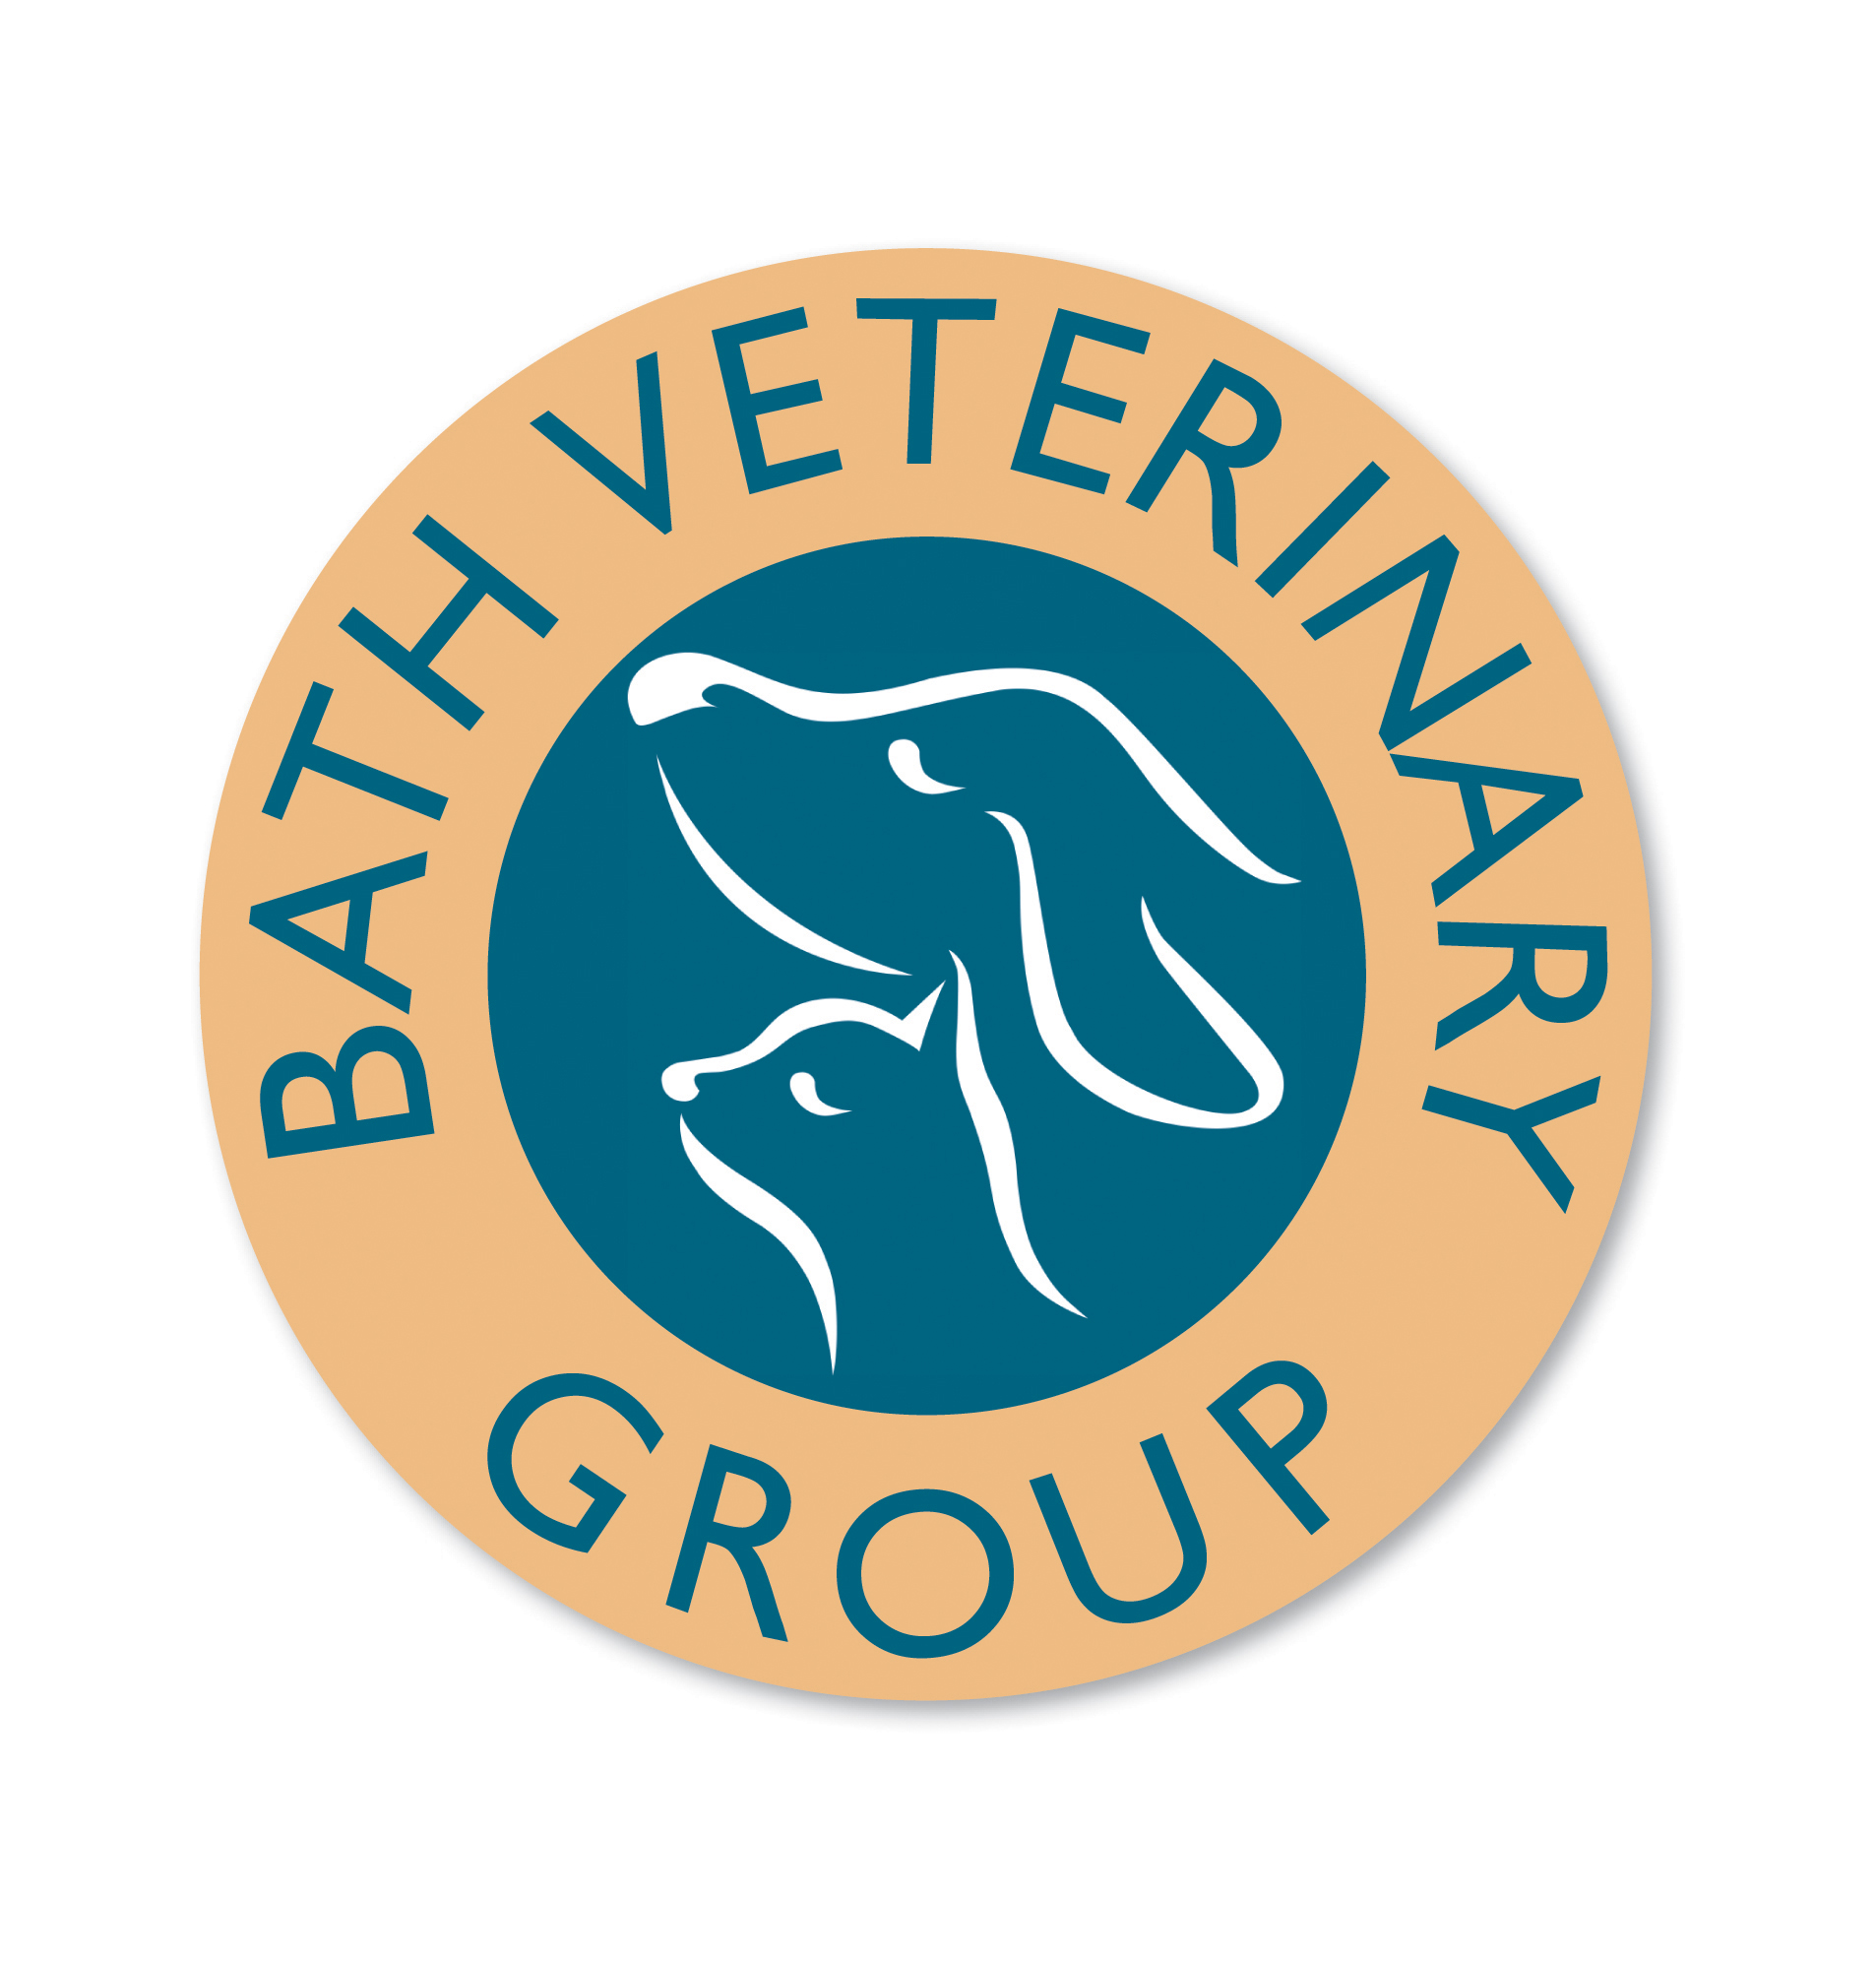 Bath Veterinary Group - Rosemary Lodge Veterinary Hospital